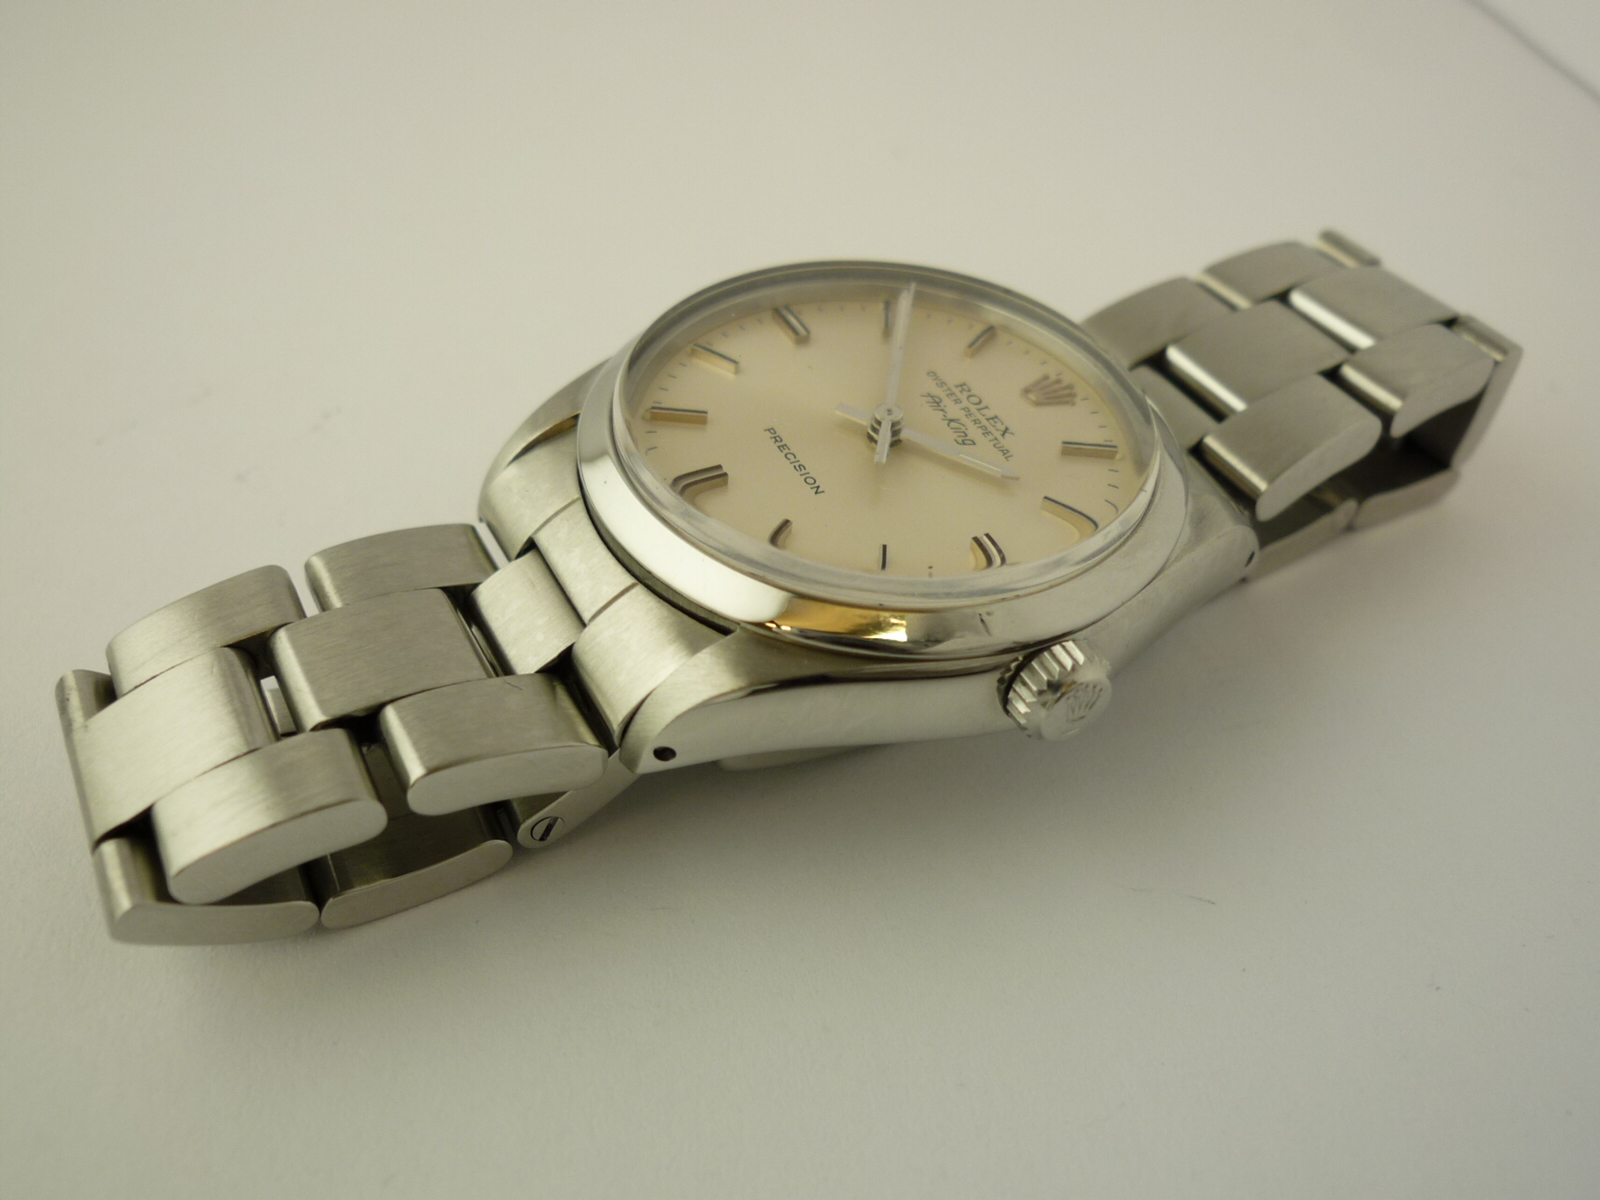 Vintage Rolex Oyster Perpetual Air King ref 5500 (1987).